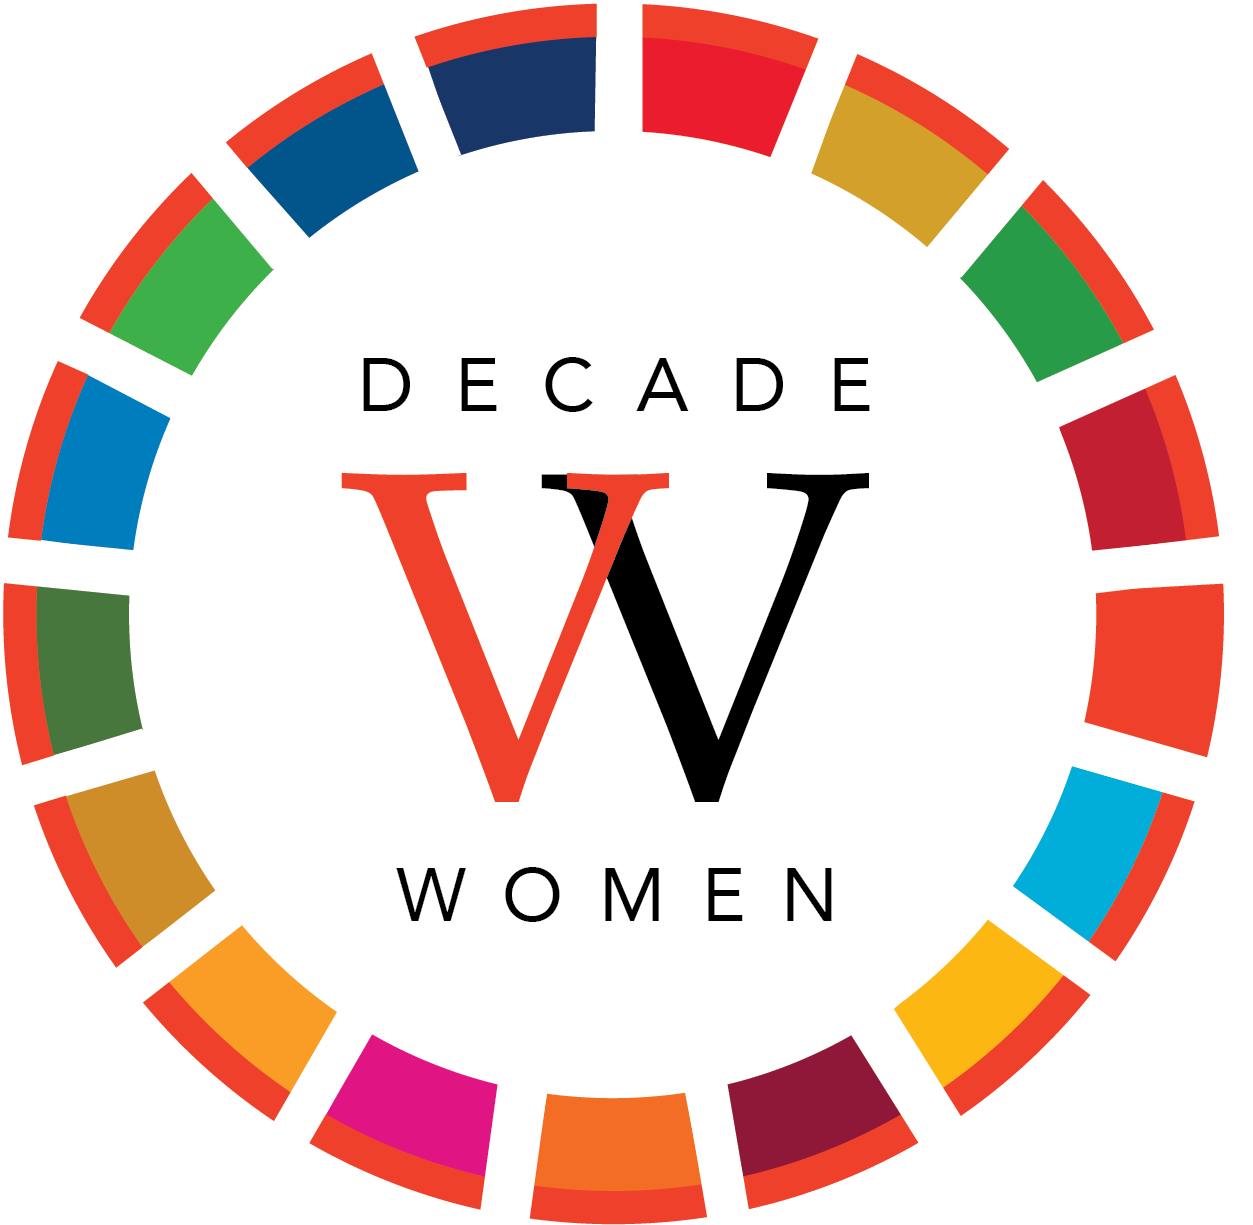 DECADE OF WOMEN ANNOUNCES YEAR-END MATCH GRANTS FOR WOMEN AND GIRLS